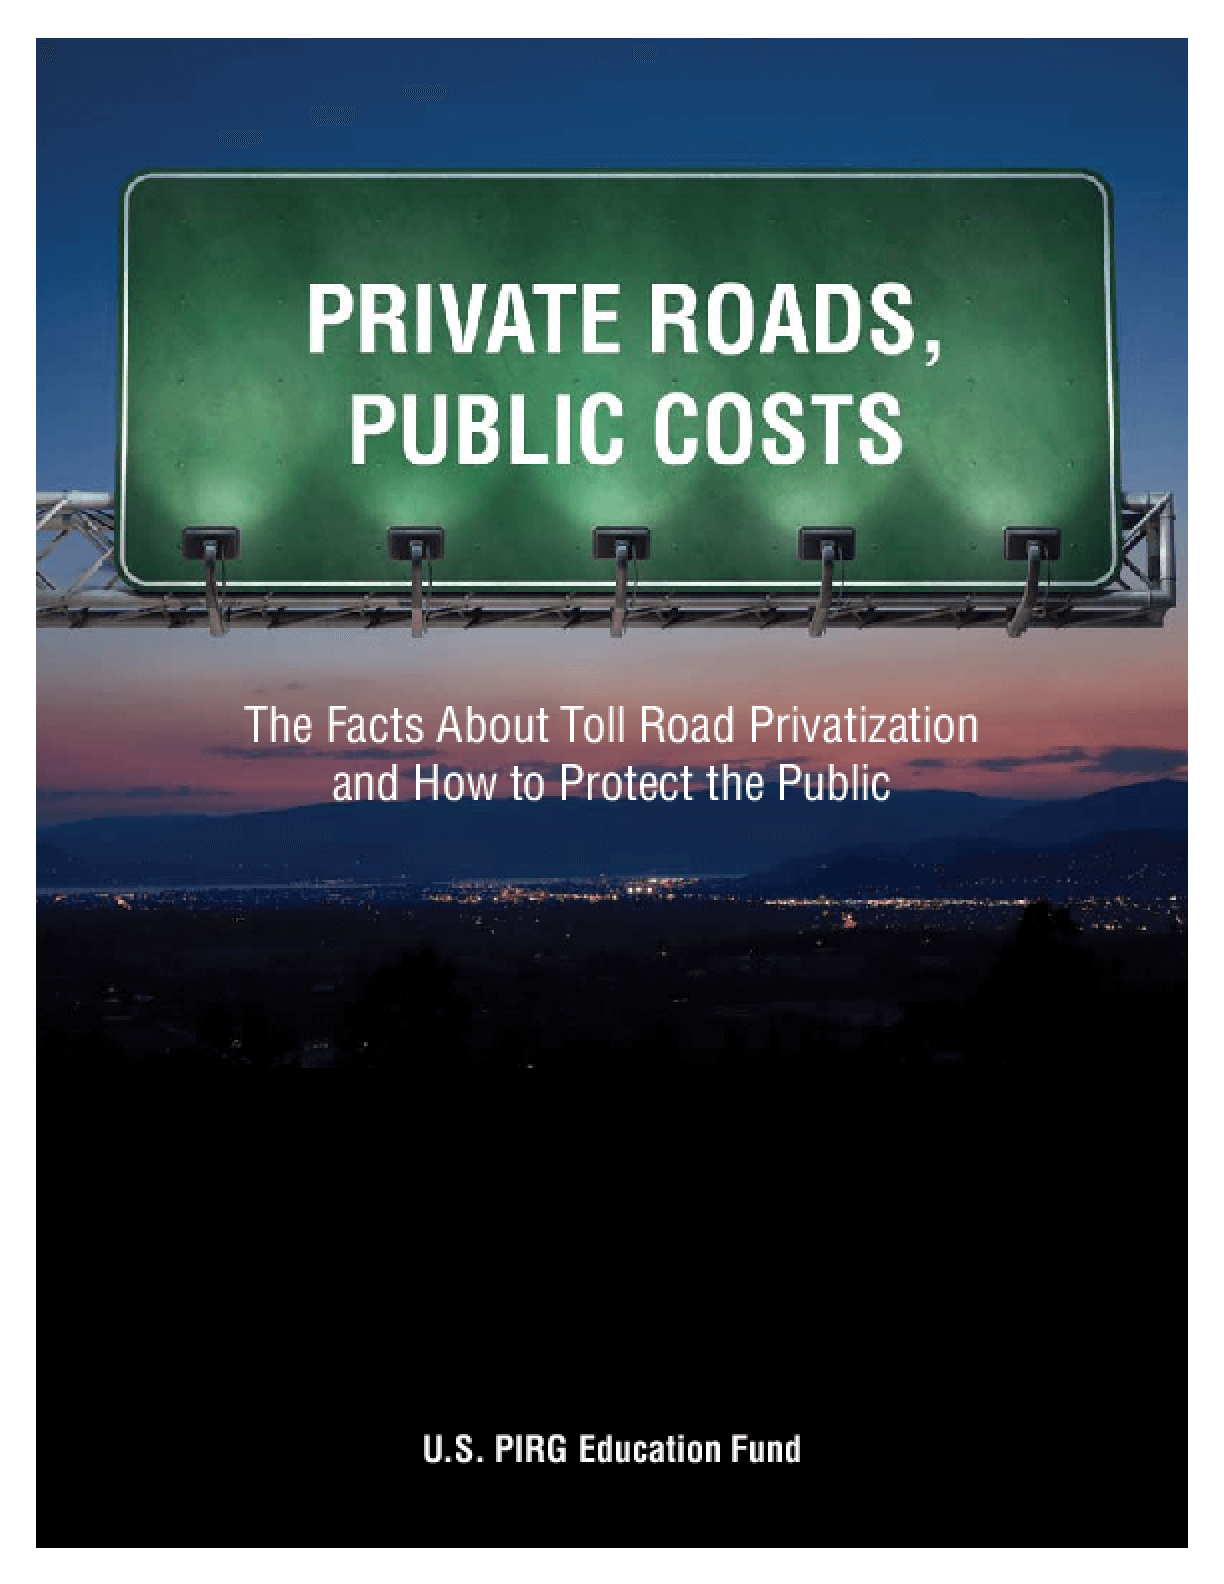 Private Roads, Public Costs: The Facts About Toll Road Privatization and How to Protect the Public